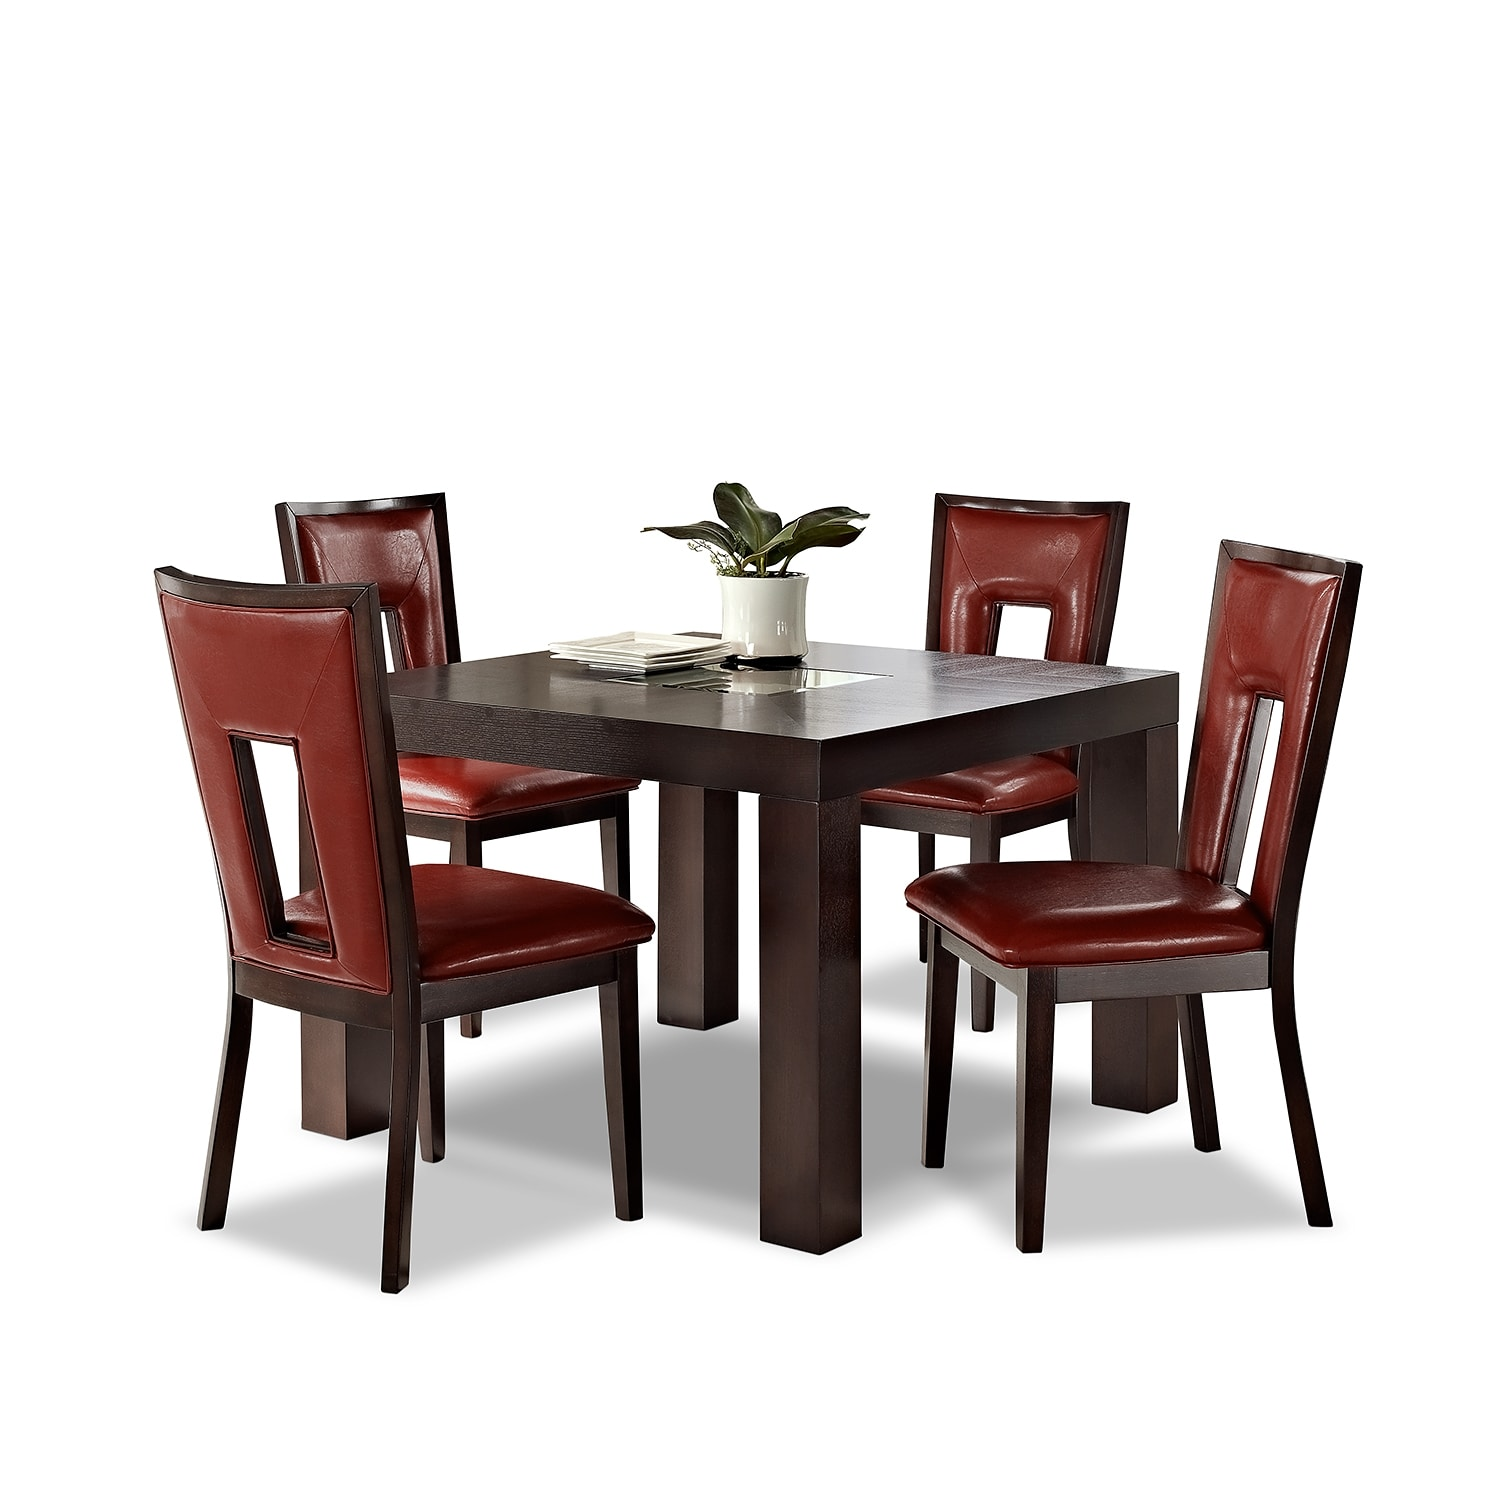 Tango madera ii dining room 5 pc dinette 42 table for Dining room furniture specials